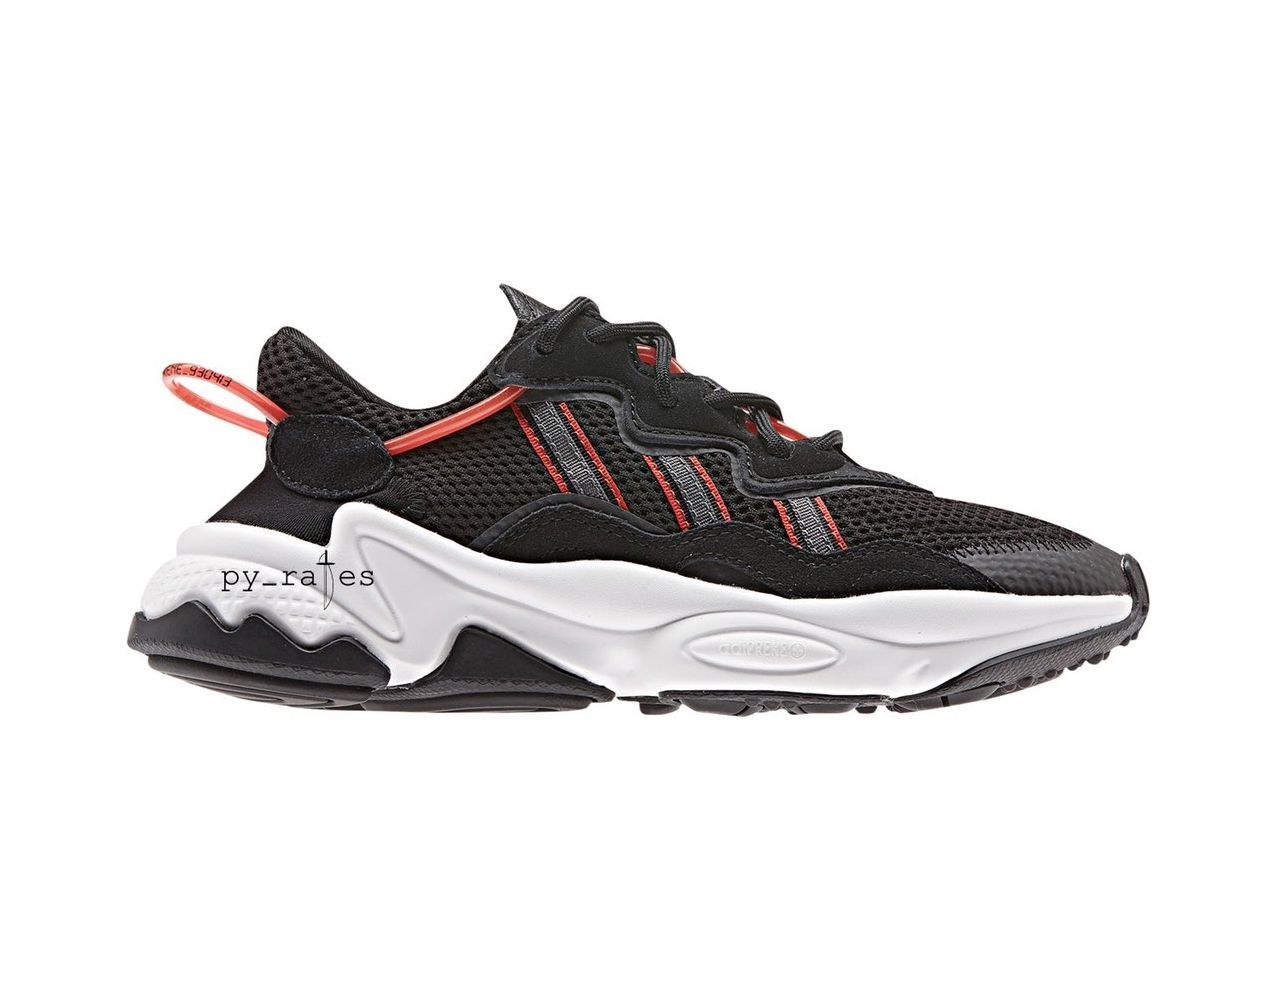 adidas ozweego 2019 | Polyvore | Sneakers nike, Air max ...